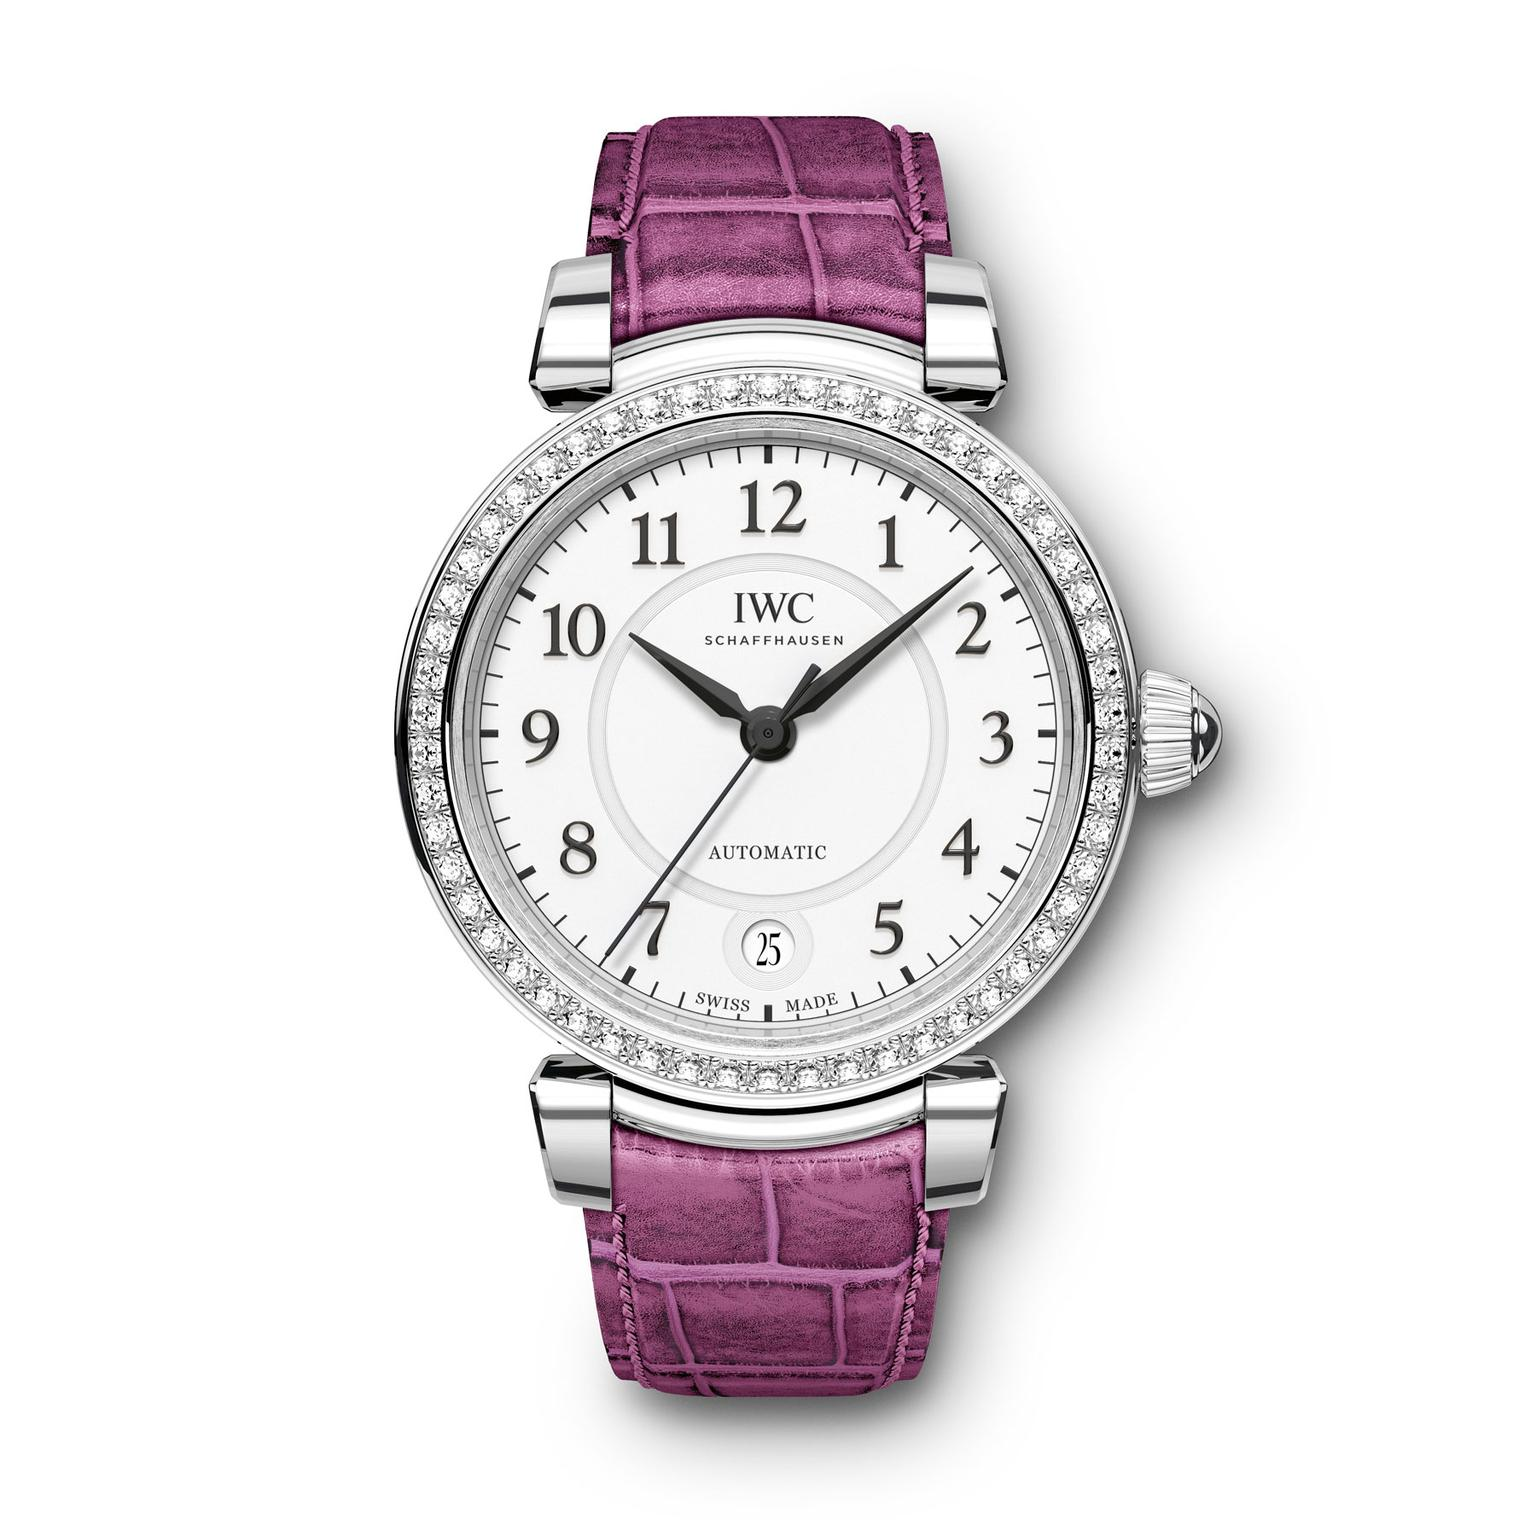 IWC Da Vinci Automatic 36mm steel and diamond watch for women with pink strap